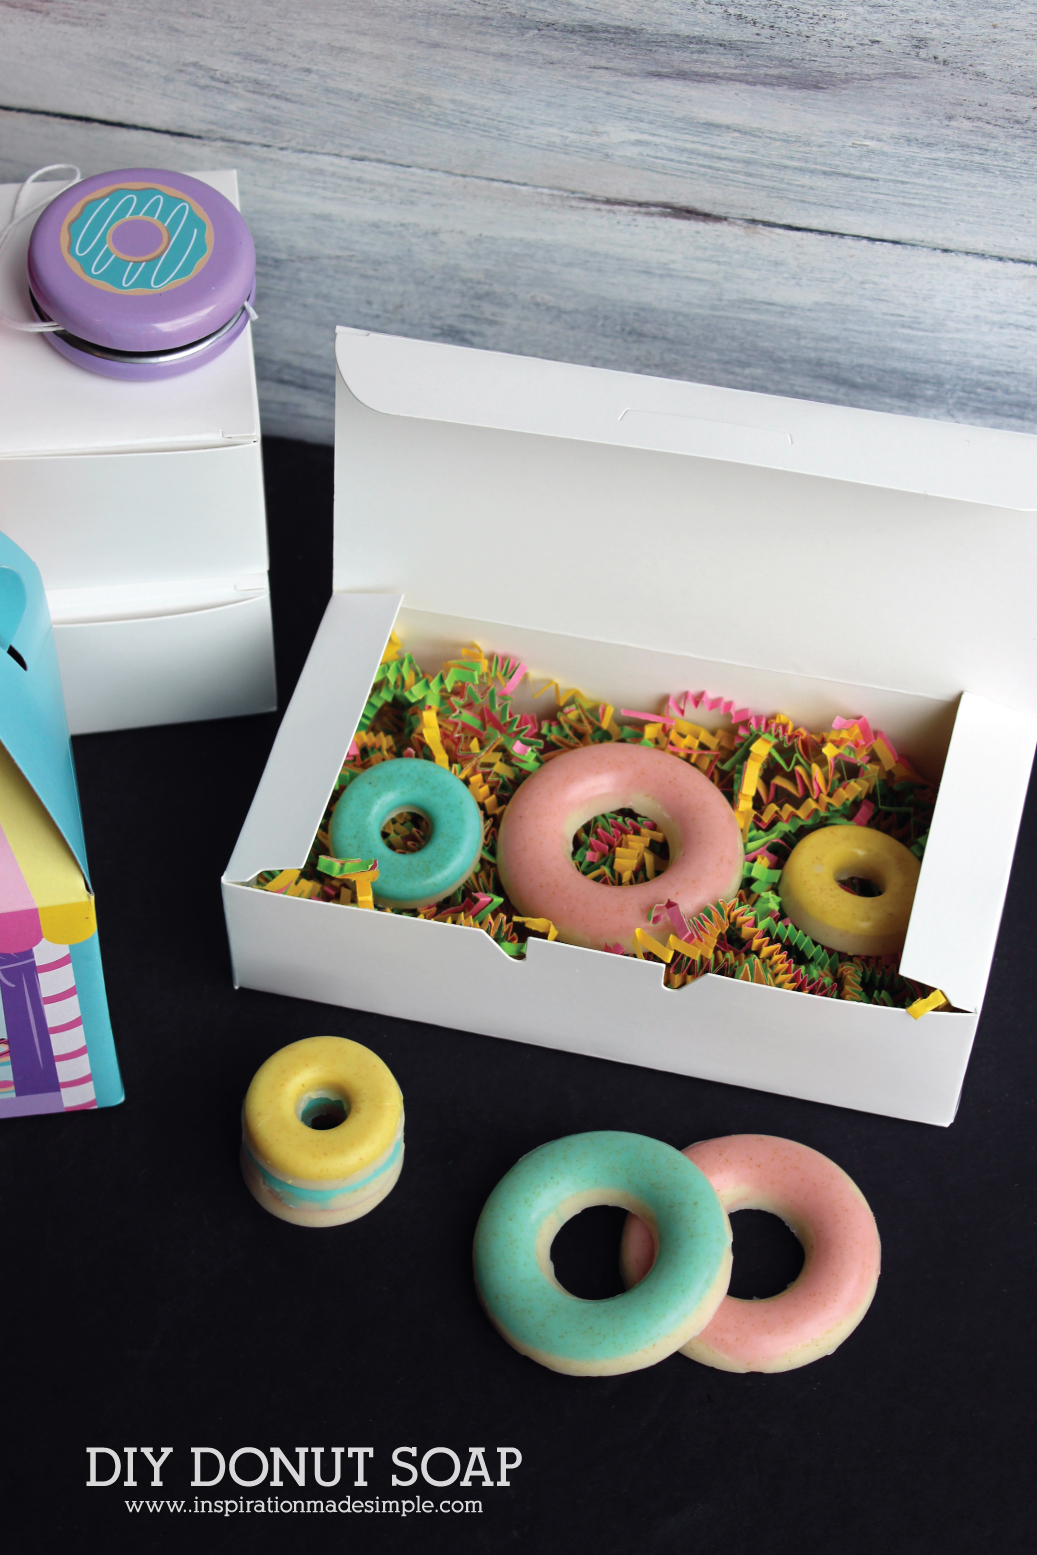 DIY Donut Soap Party Favor Idea